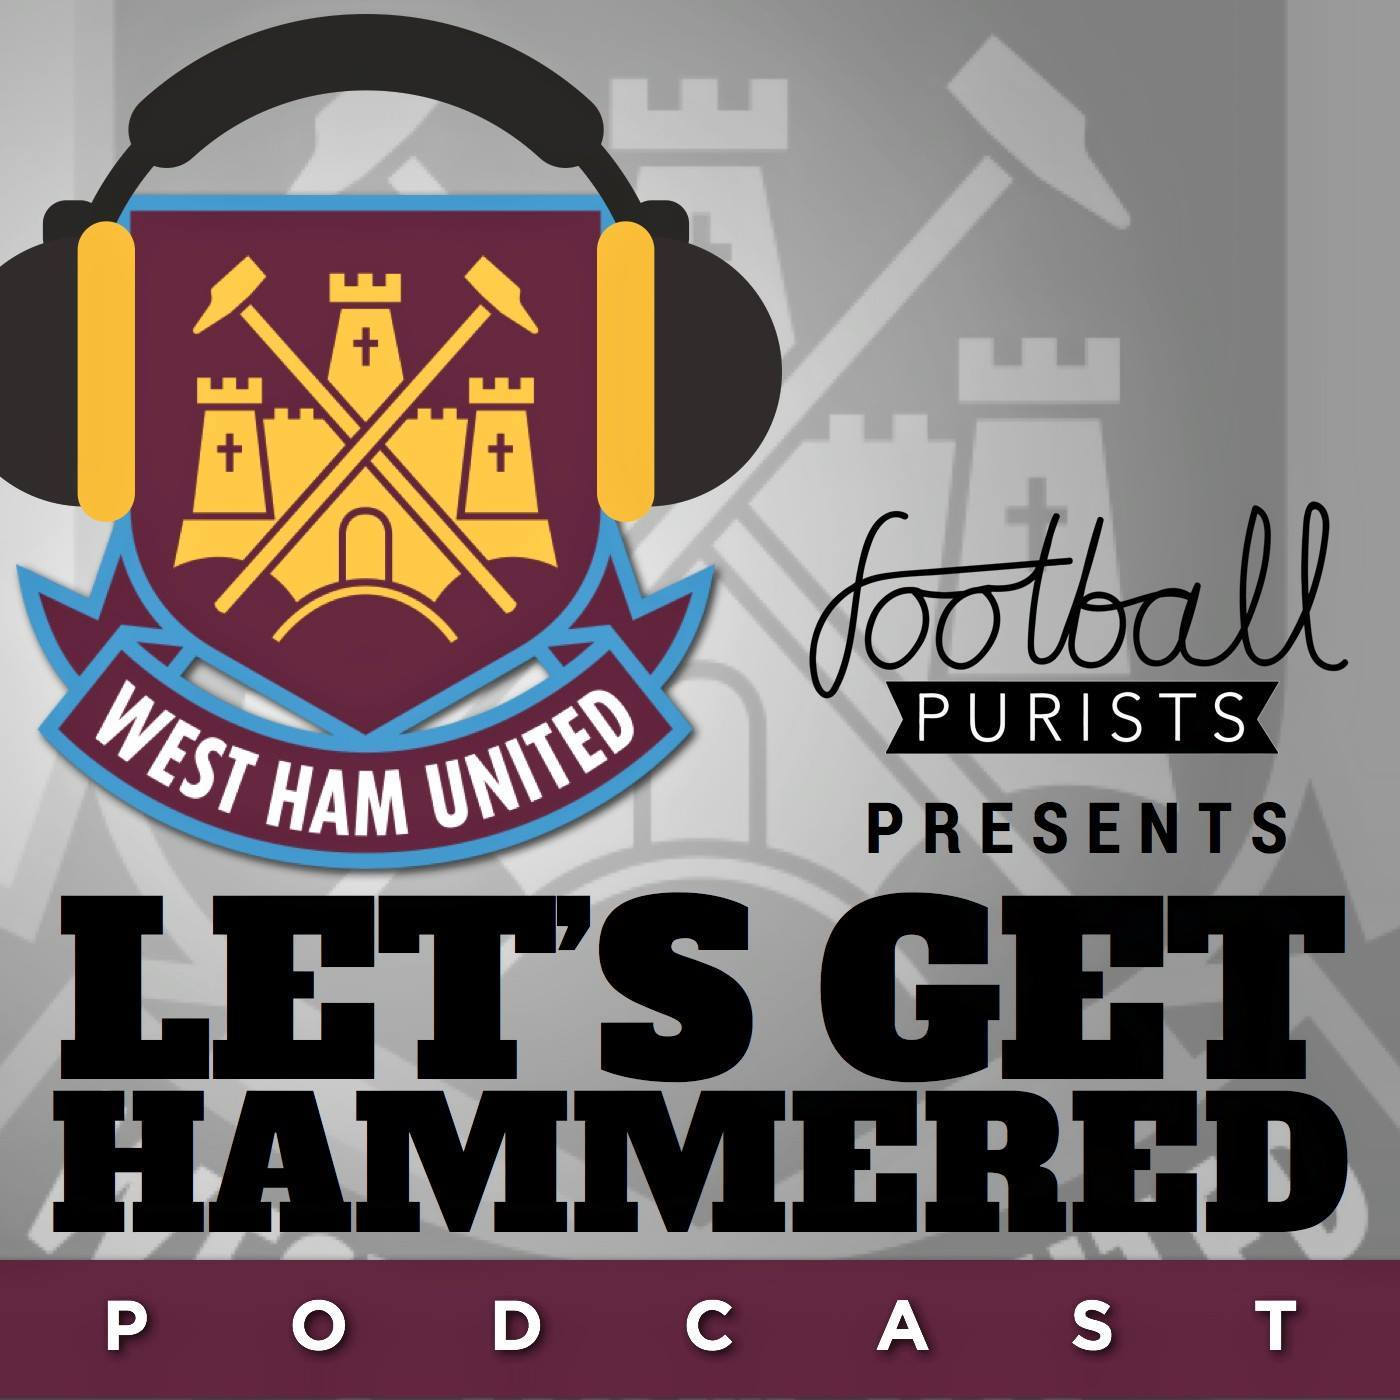 West Ham : Let's Get Hammered - Adrian saves us AGAIN